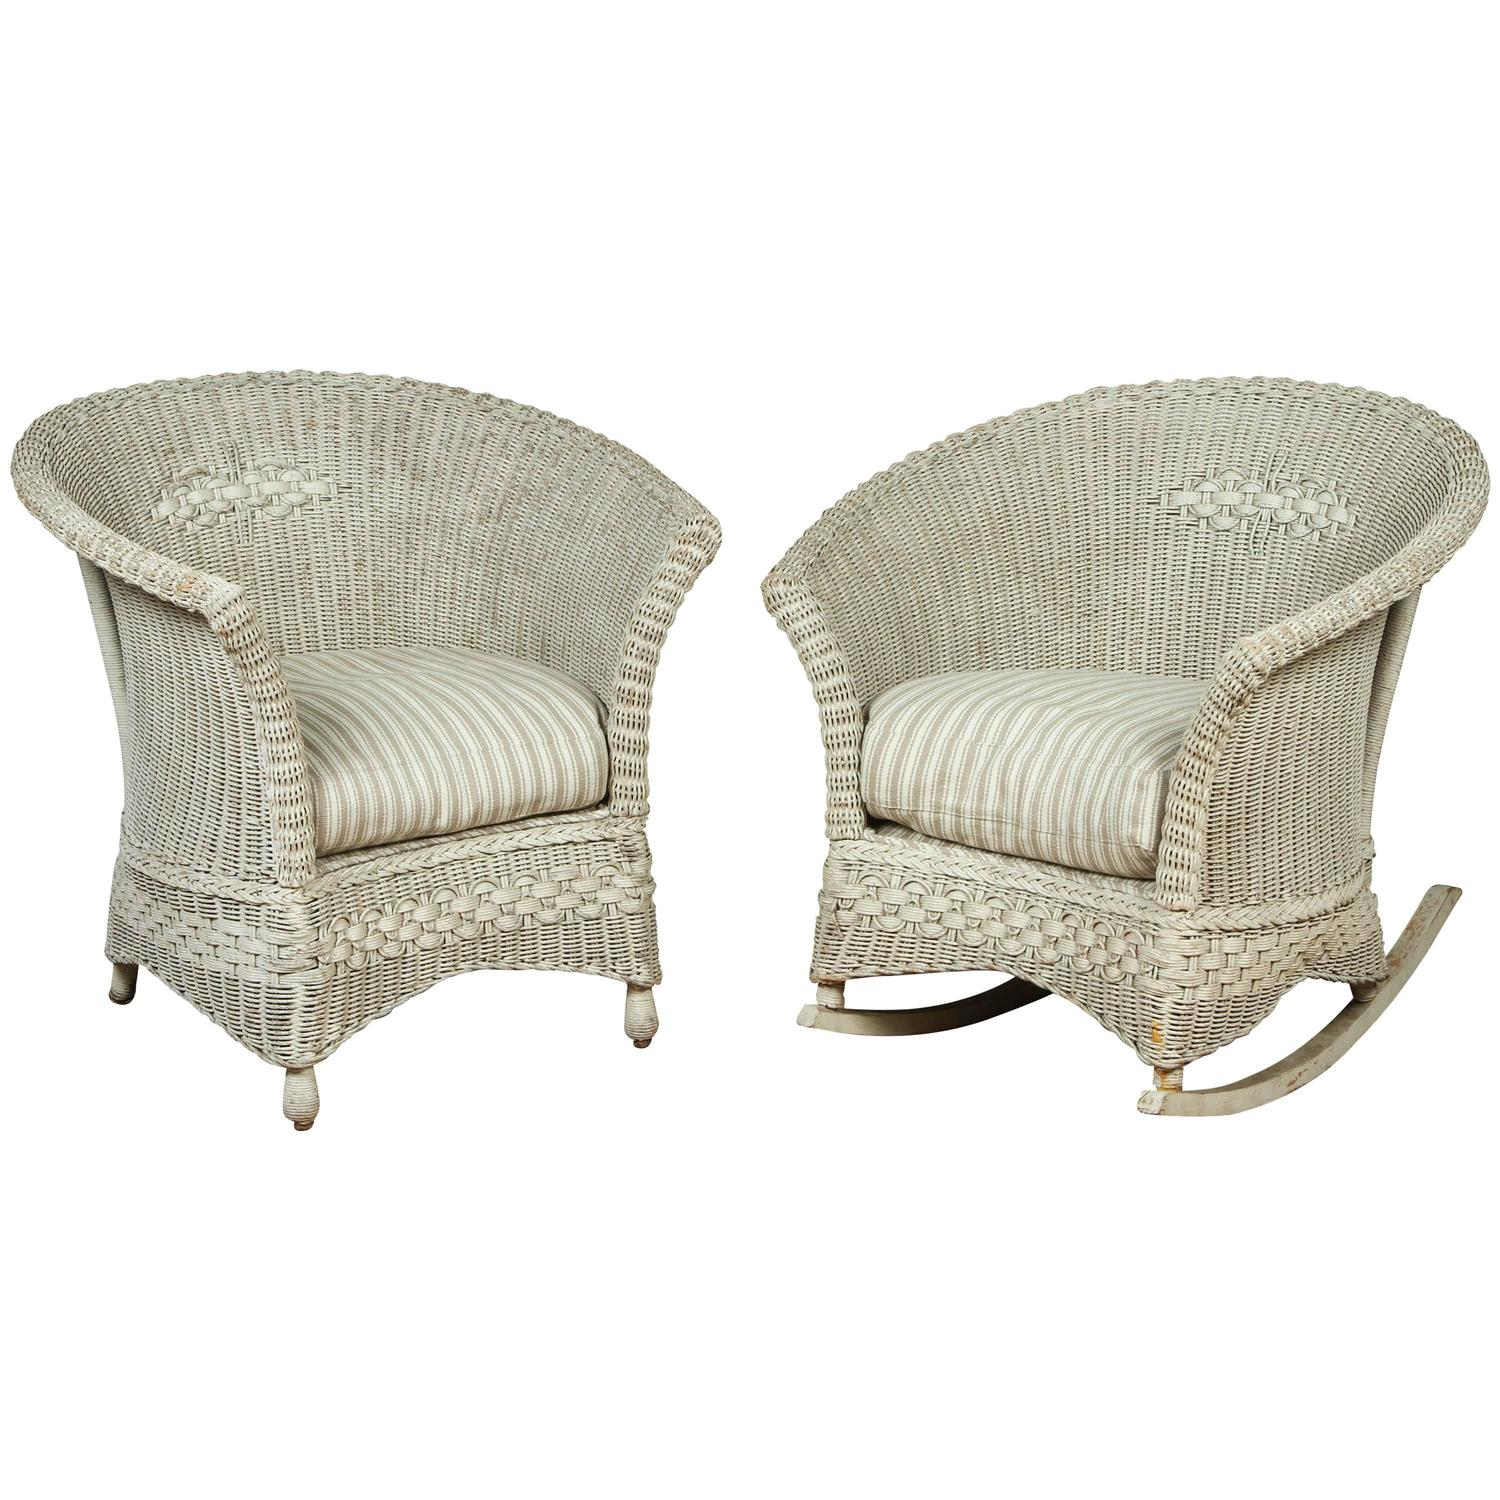 Antique Wicker Chair and Rocker For Sale at 1stdibs